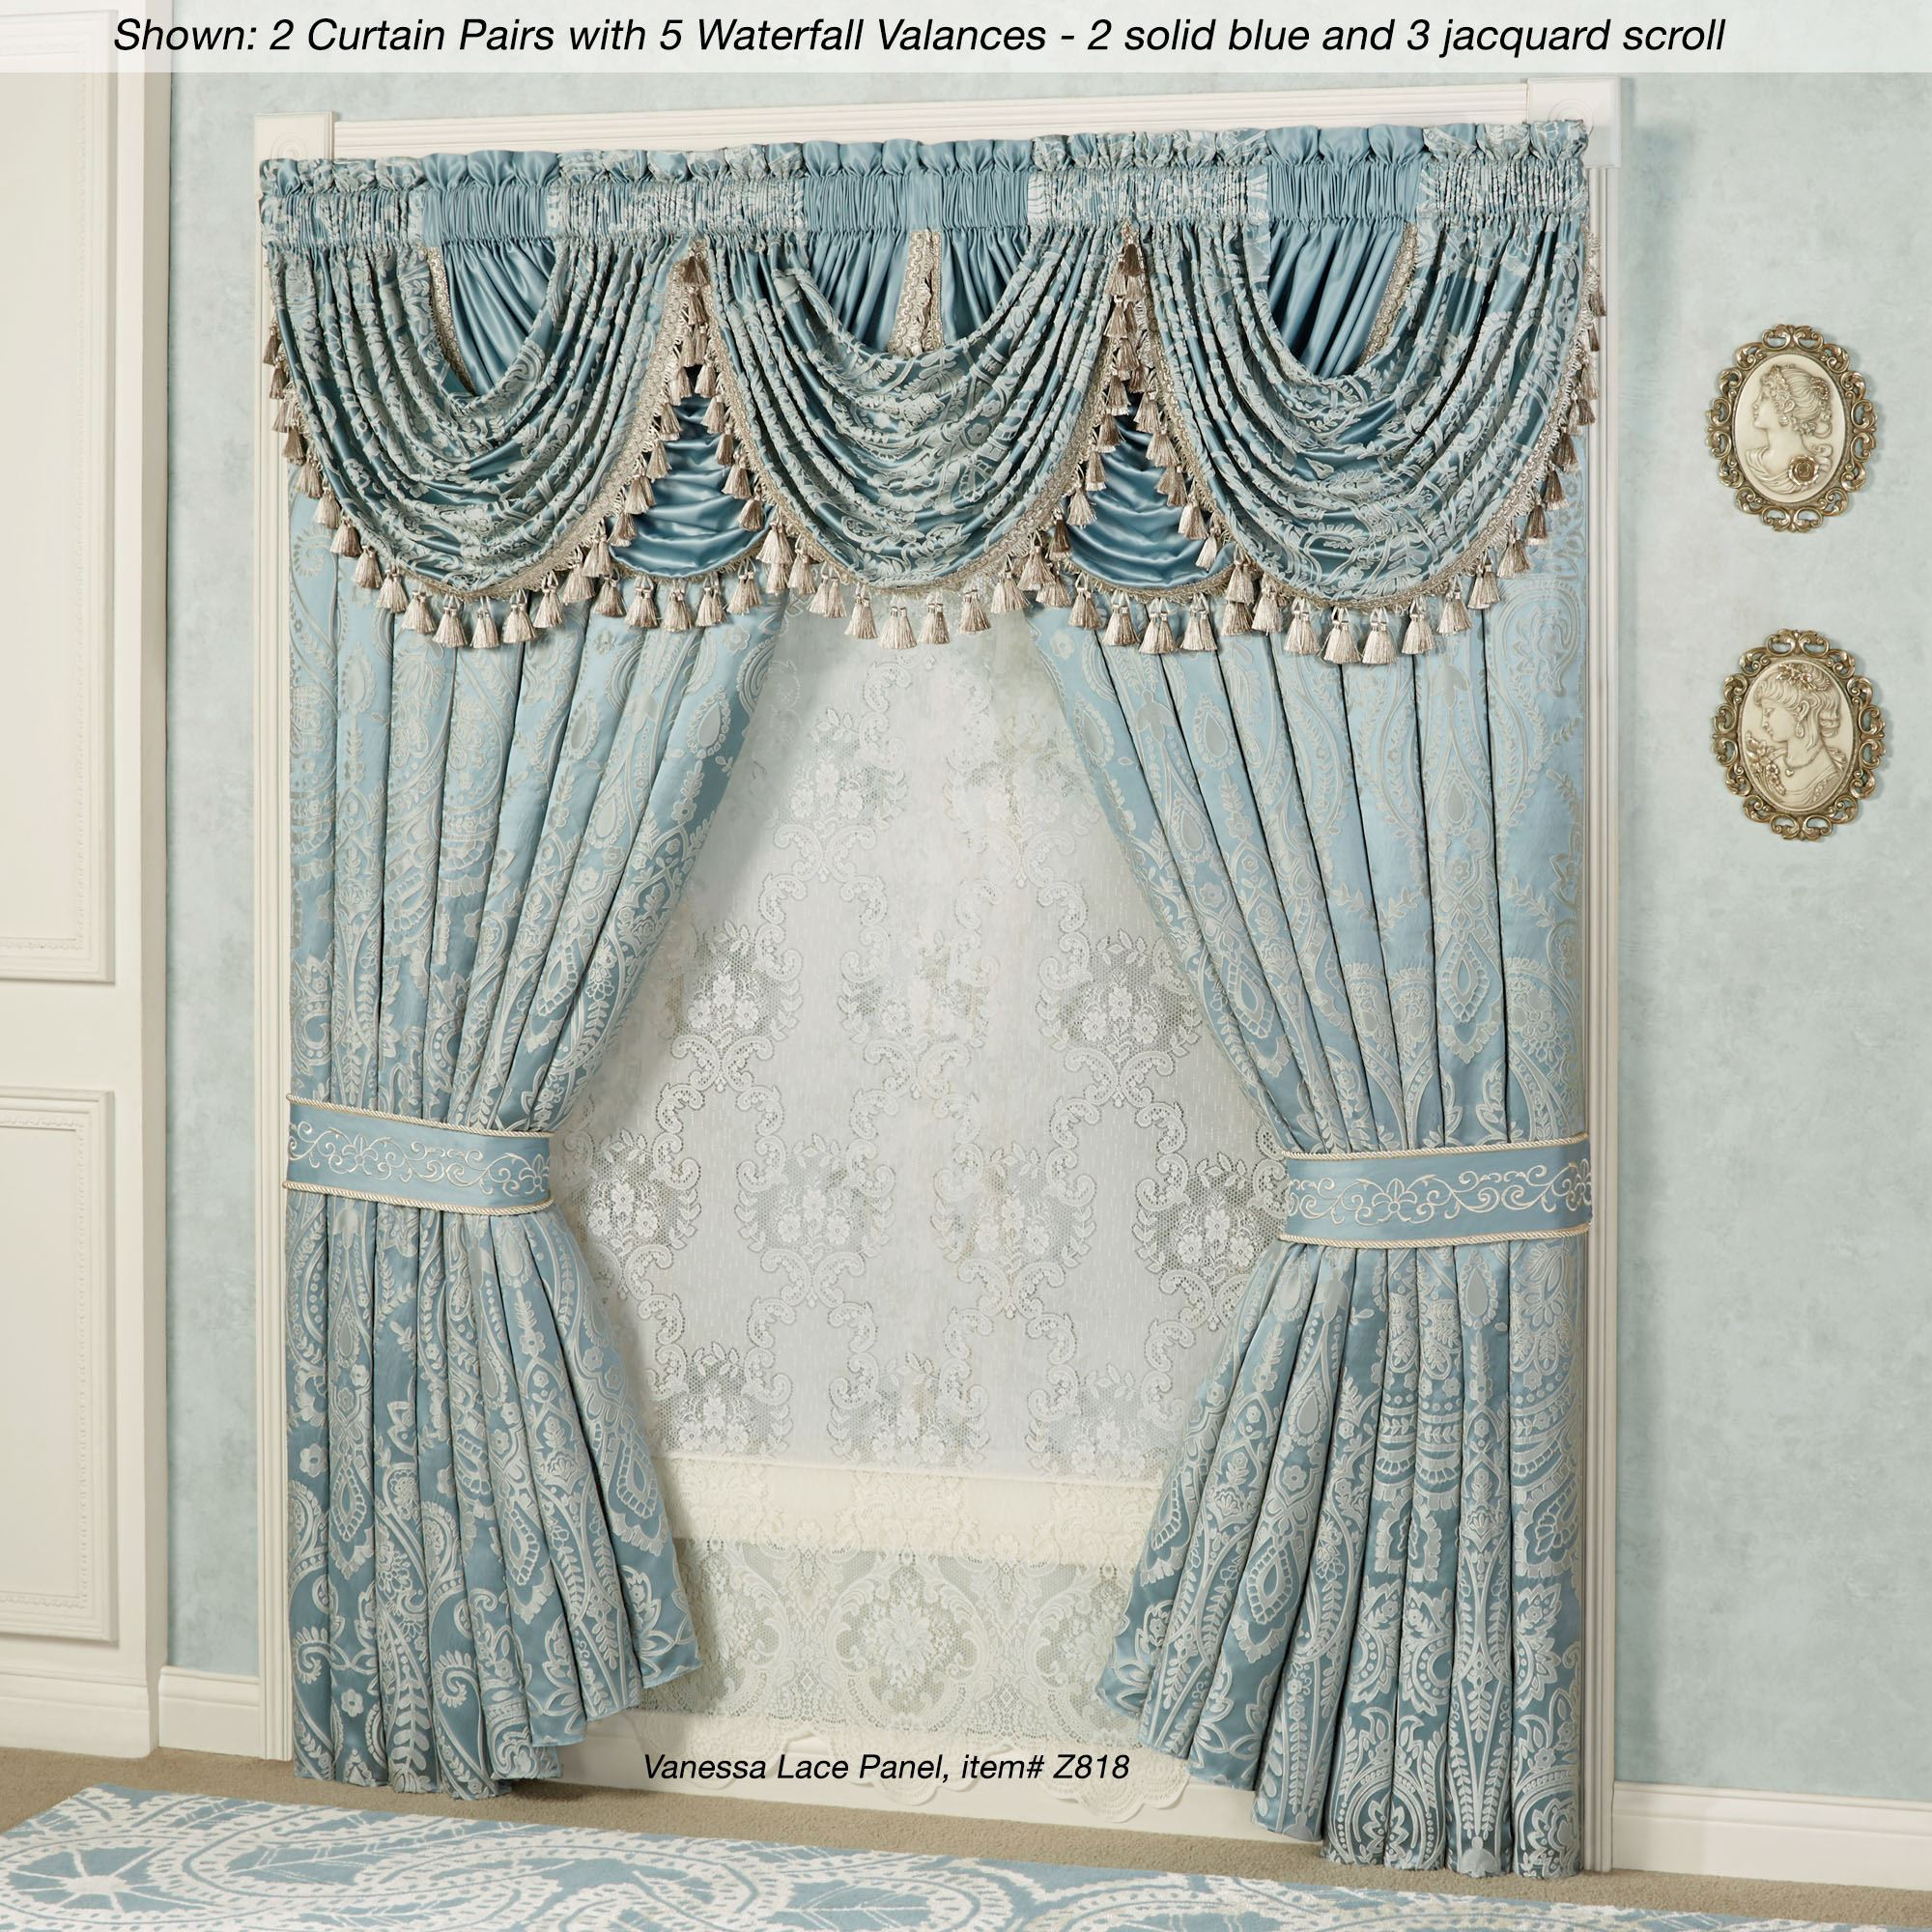 Regency Waterfall Valance Window Treatment